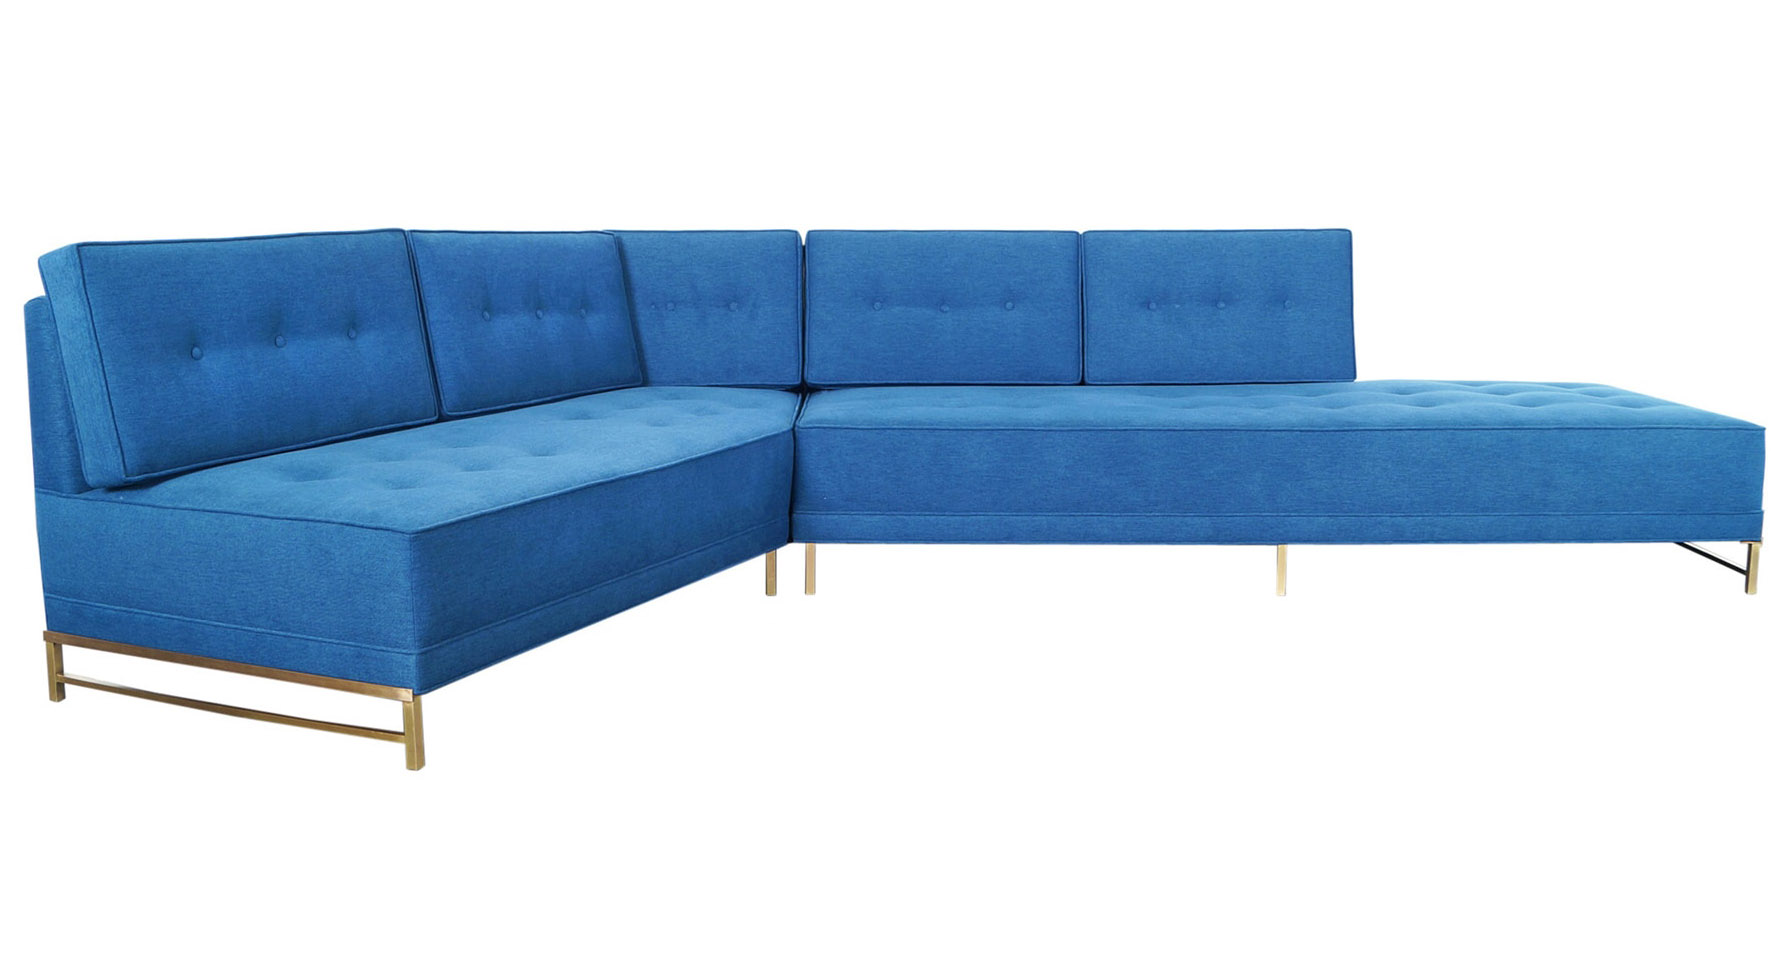 Vintage Sectional Sofa by Paul McCobb for Directional